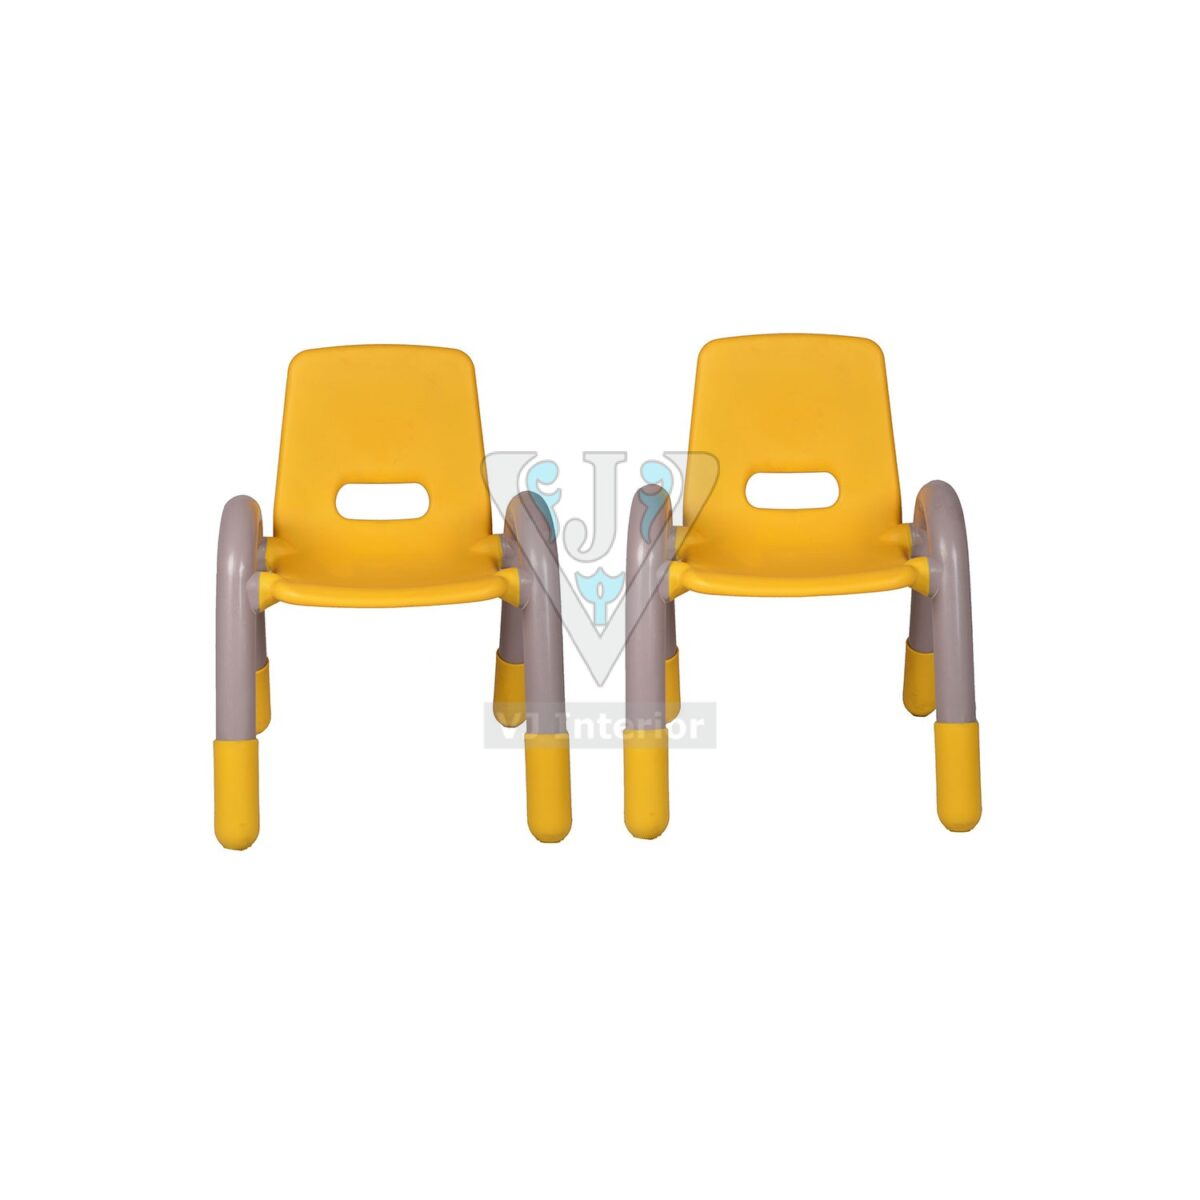 THE VOLVER ENGINEERING PLASTIC KIDS CHAIR YELLOW PAIR